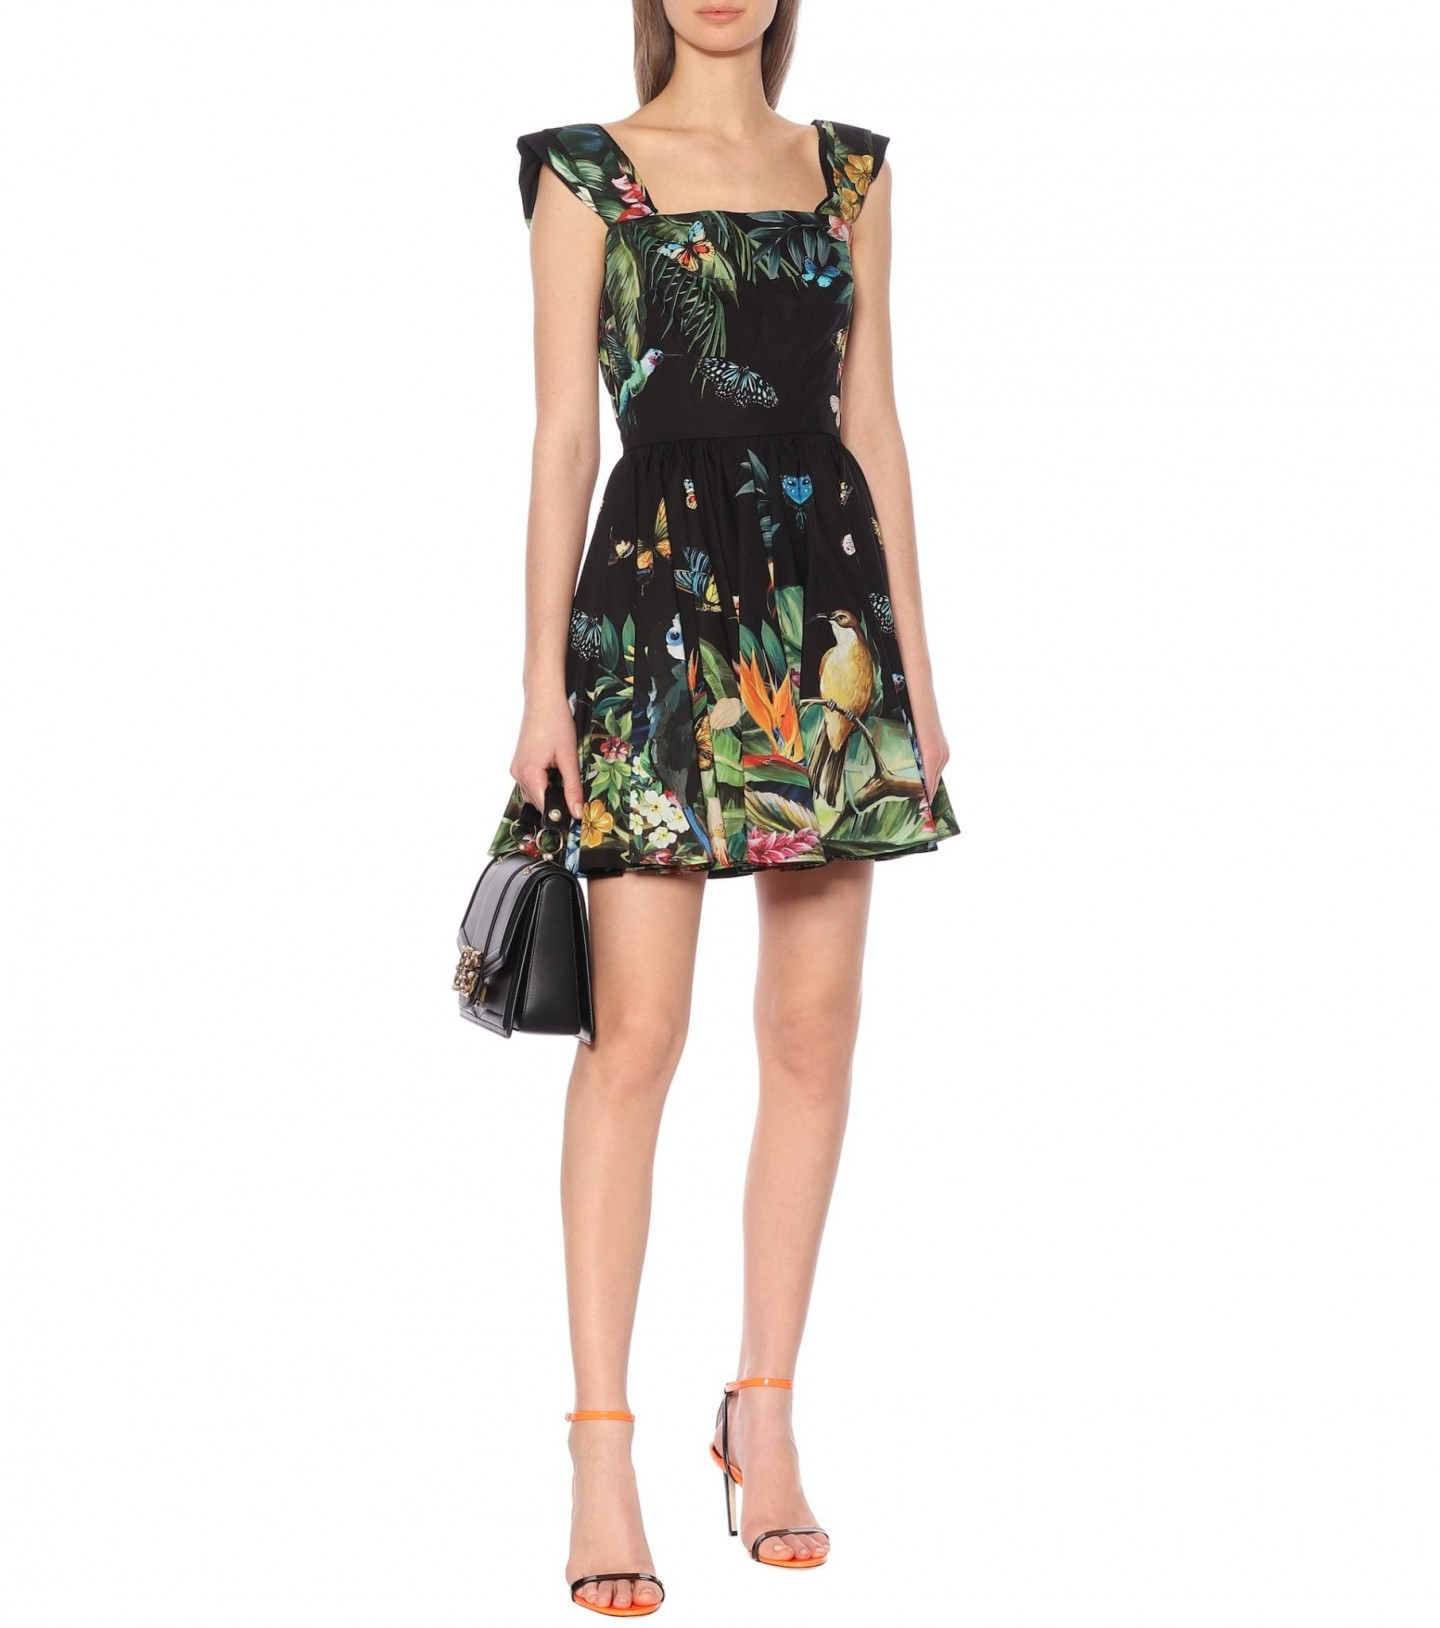 DOLCE & GABBANA Printed Cotton Mini Dress